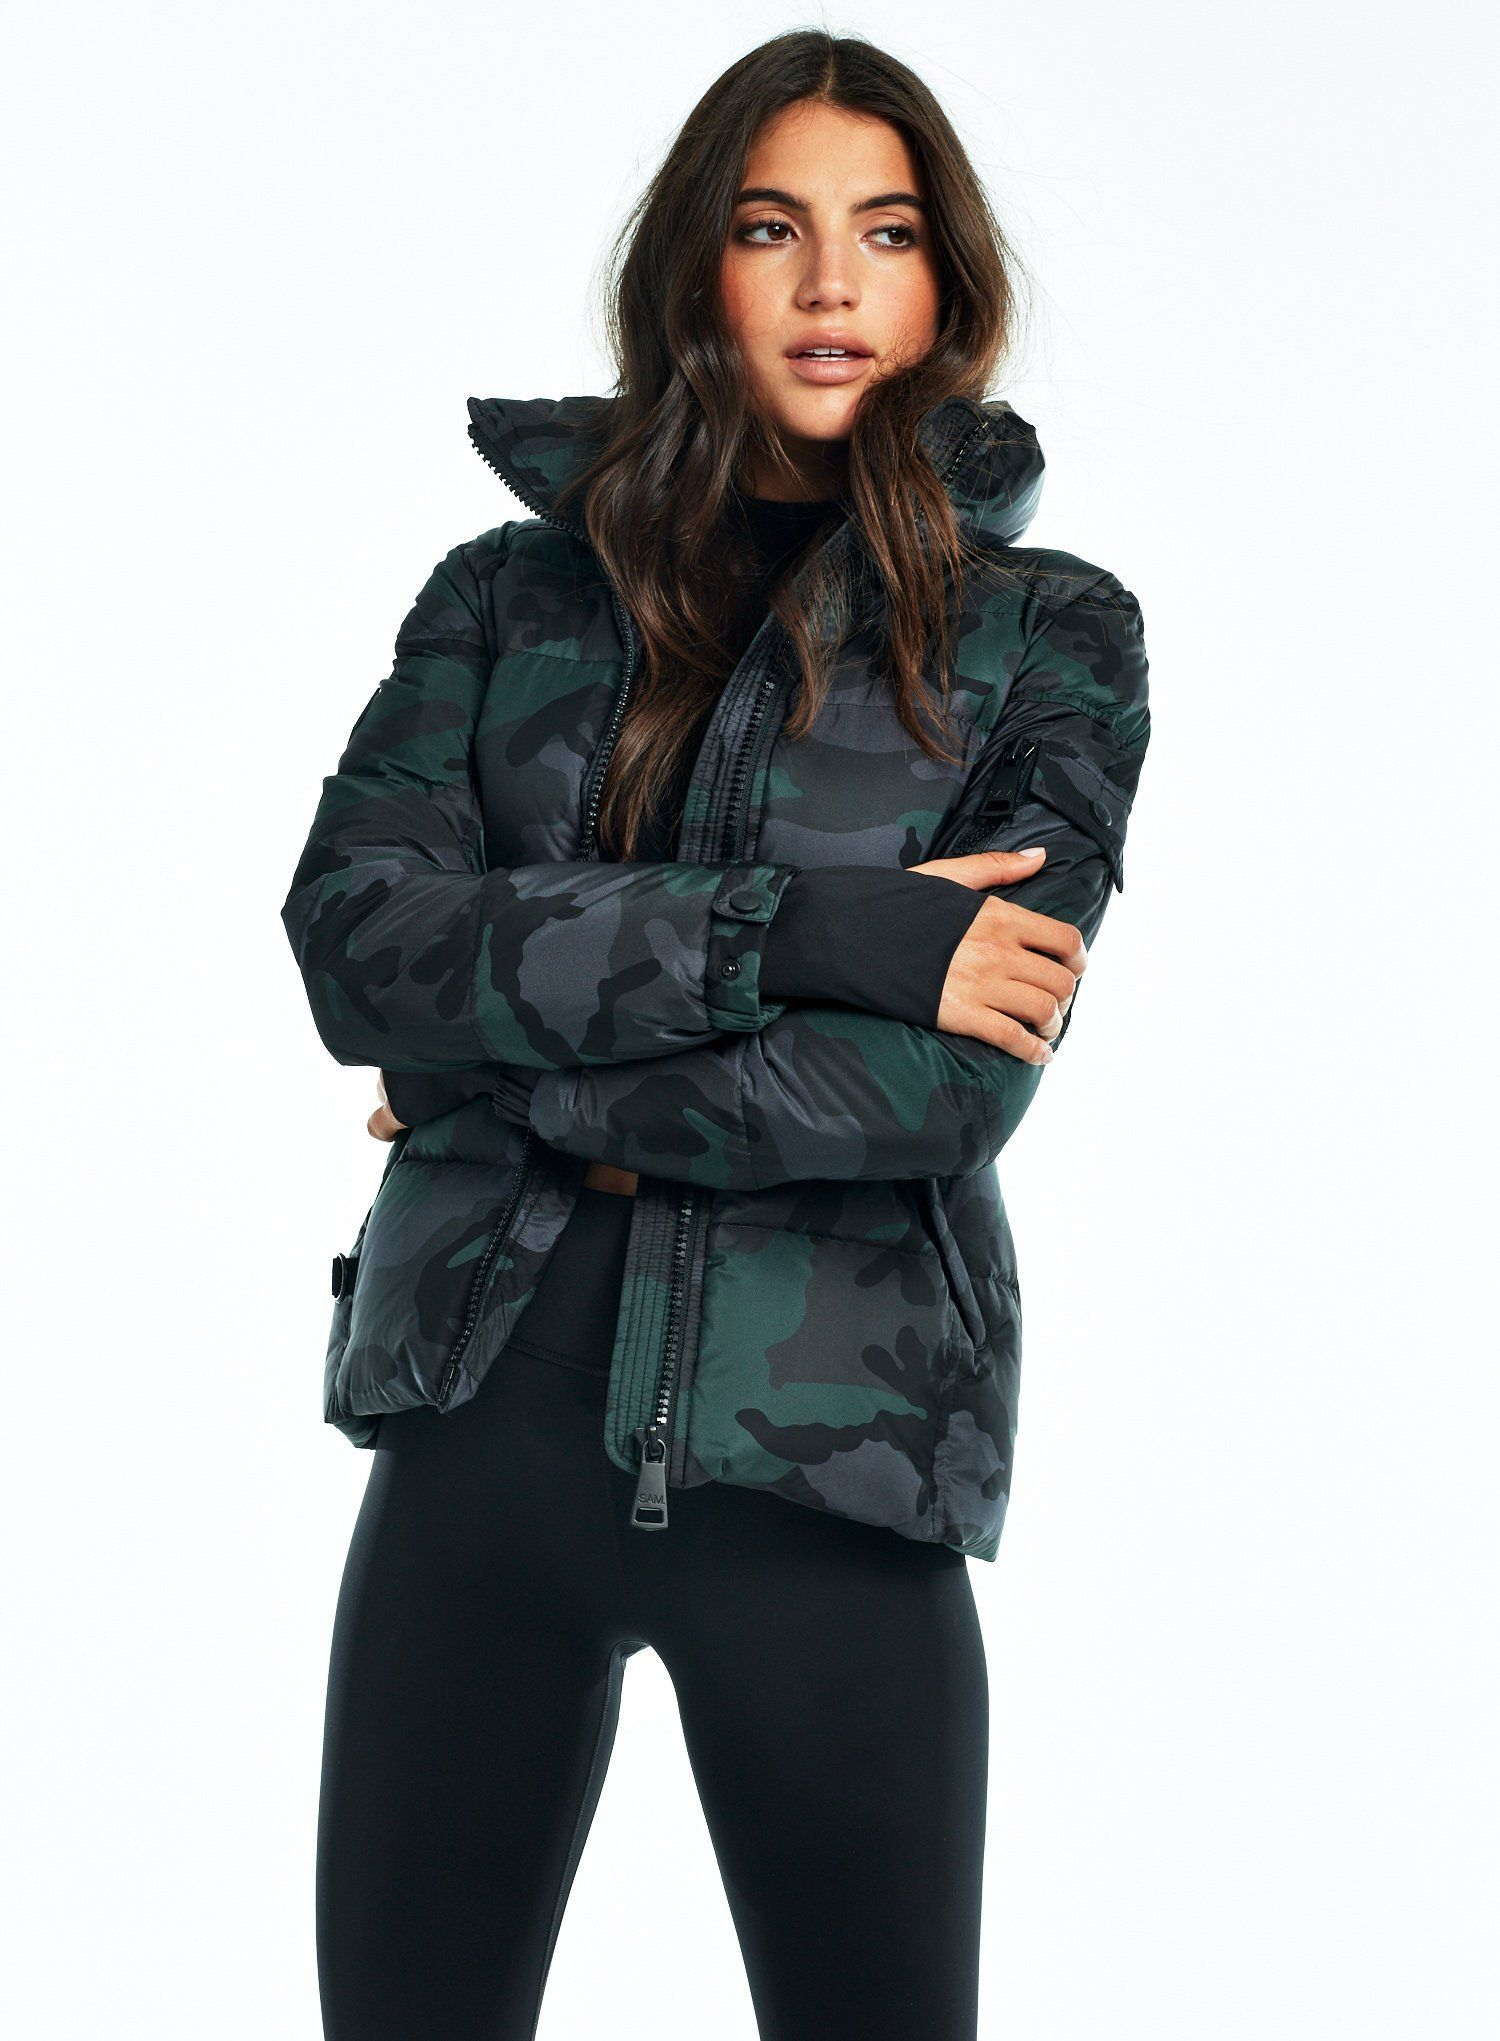 Camo Freestyle Sam Womens Camo Jackets For Women Outdoor Outfit [ 2041 x 1500 Pixel ]